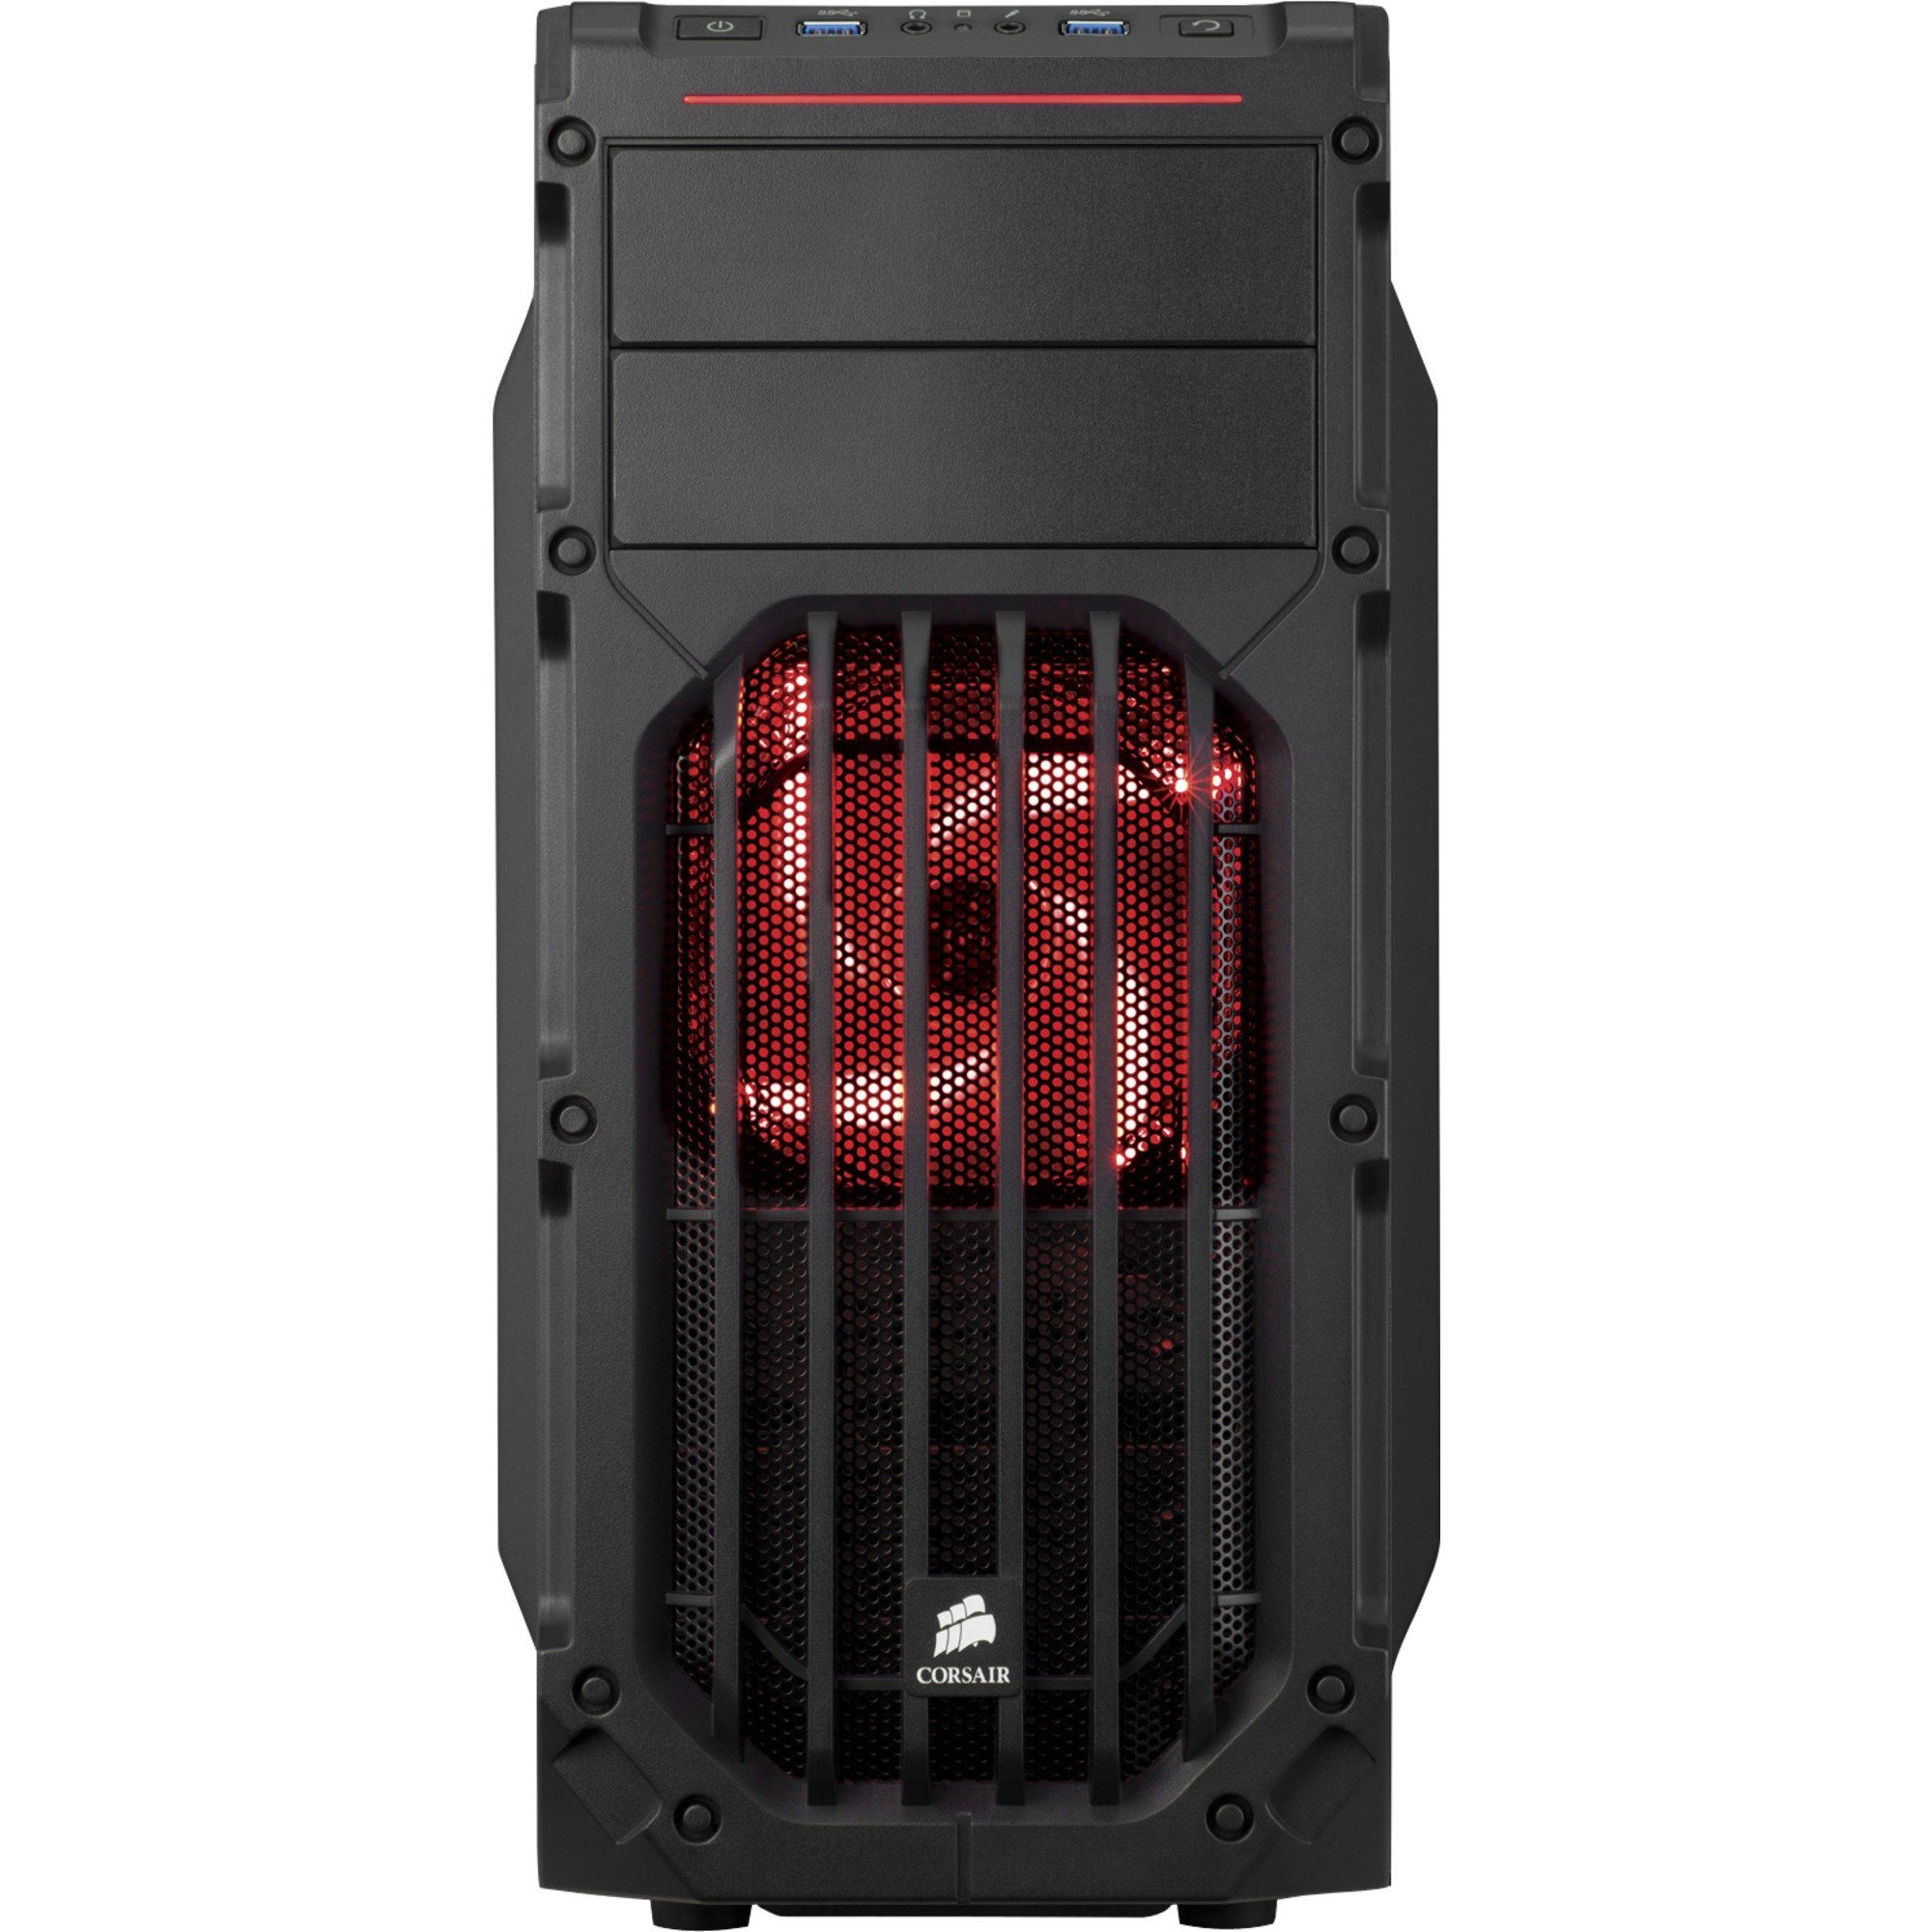 Corsair Tower-Gehäuse »SPEC-03 Red LED«